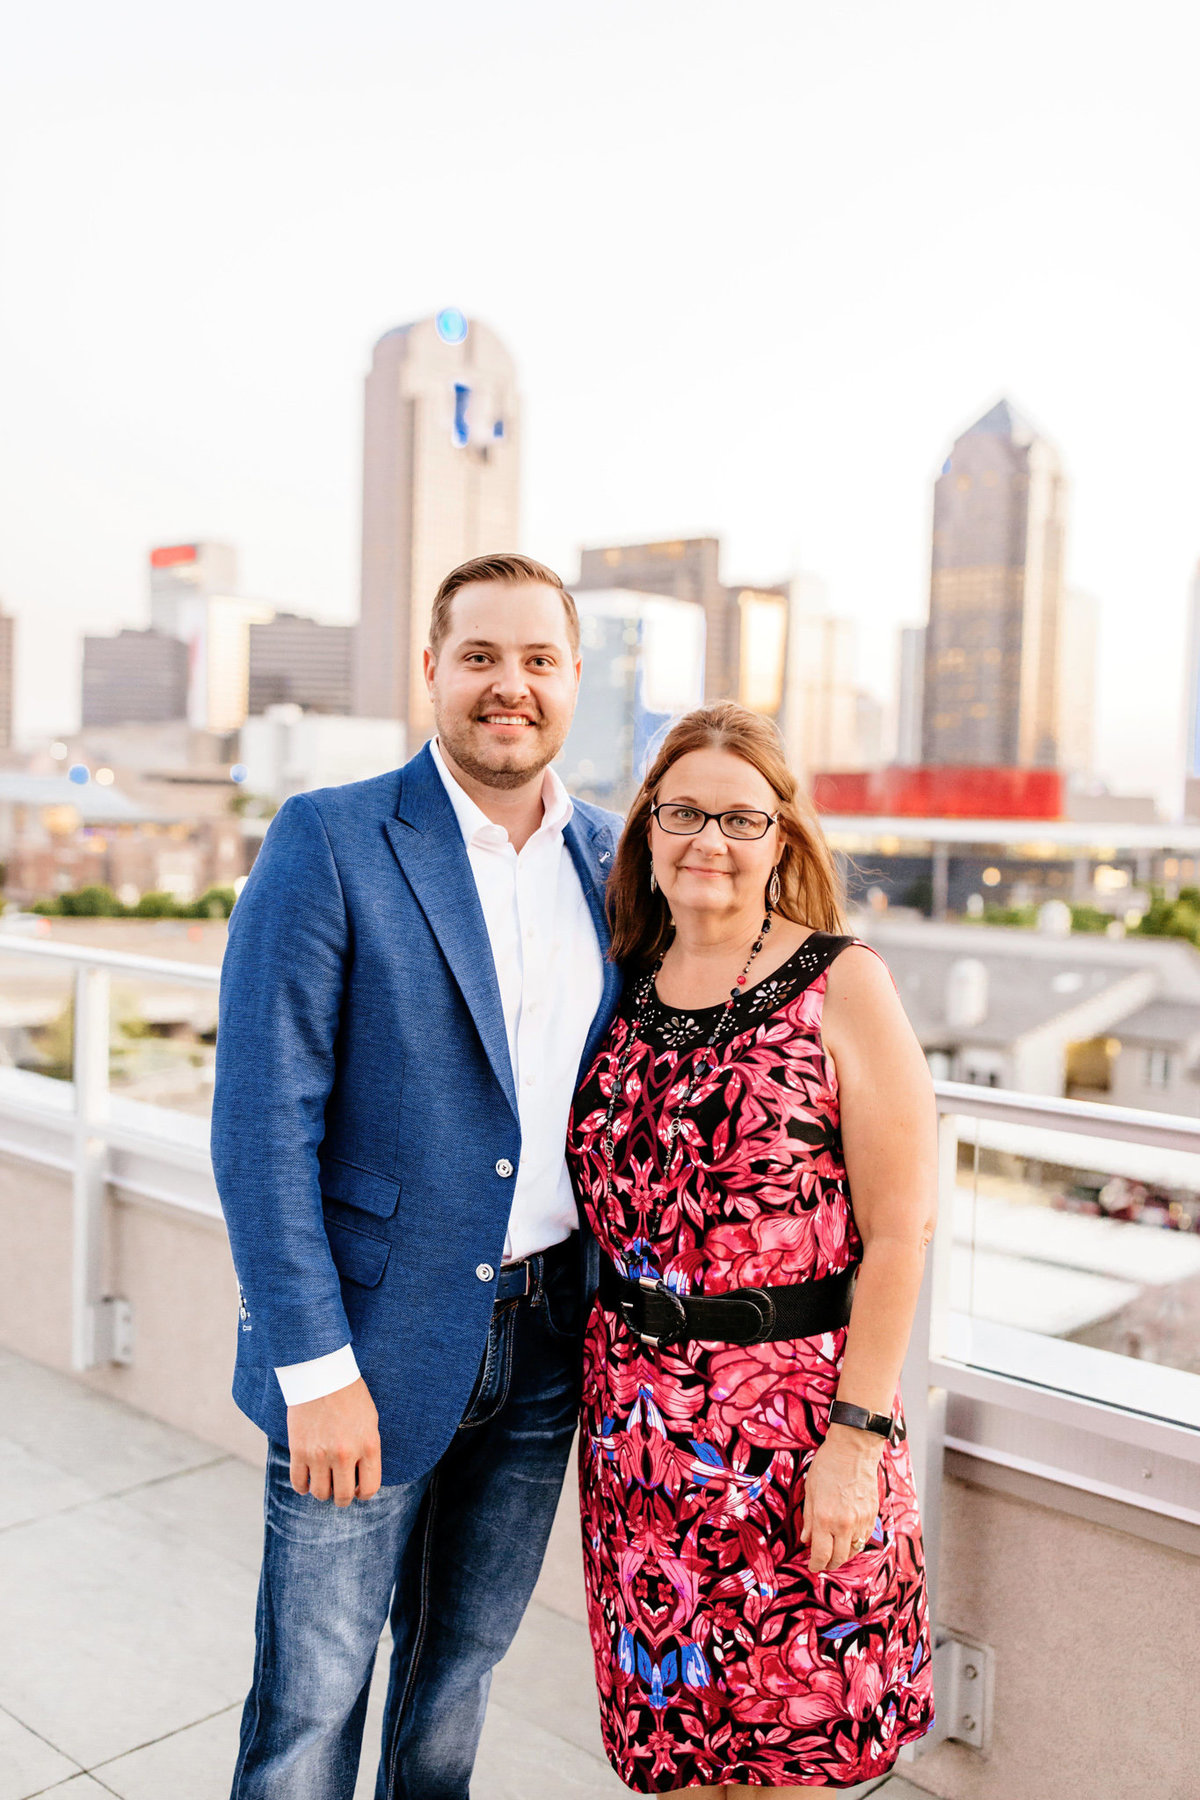 Eric & Megan - Downtown Dallas Rooftop Proposal & Engagement Session-247